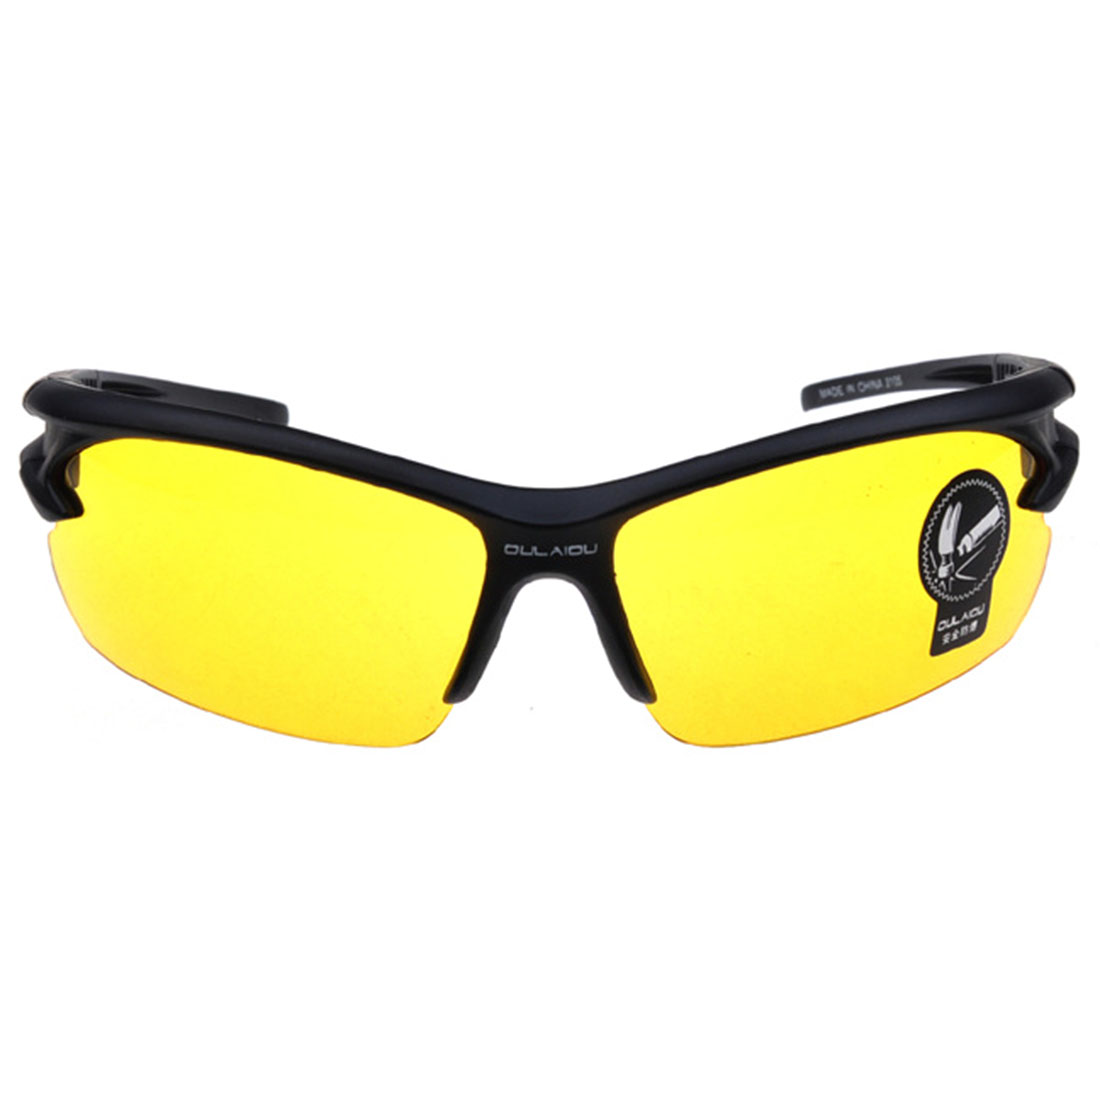 running eyewear  Online Buy Wholesale running eyeglasses from China running ...